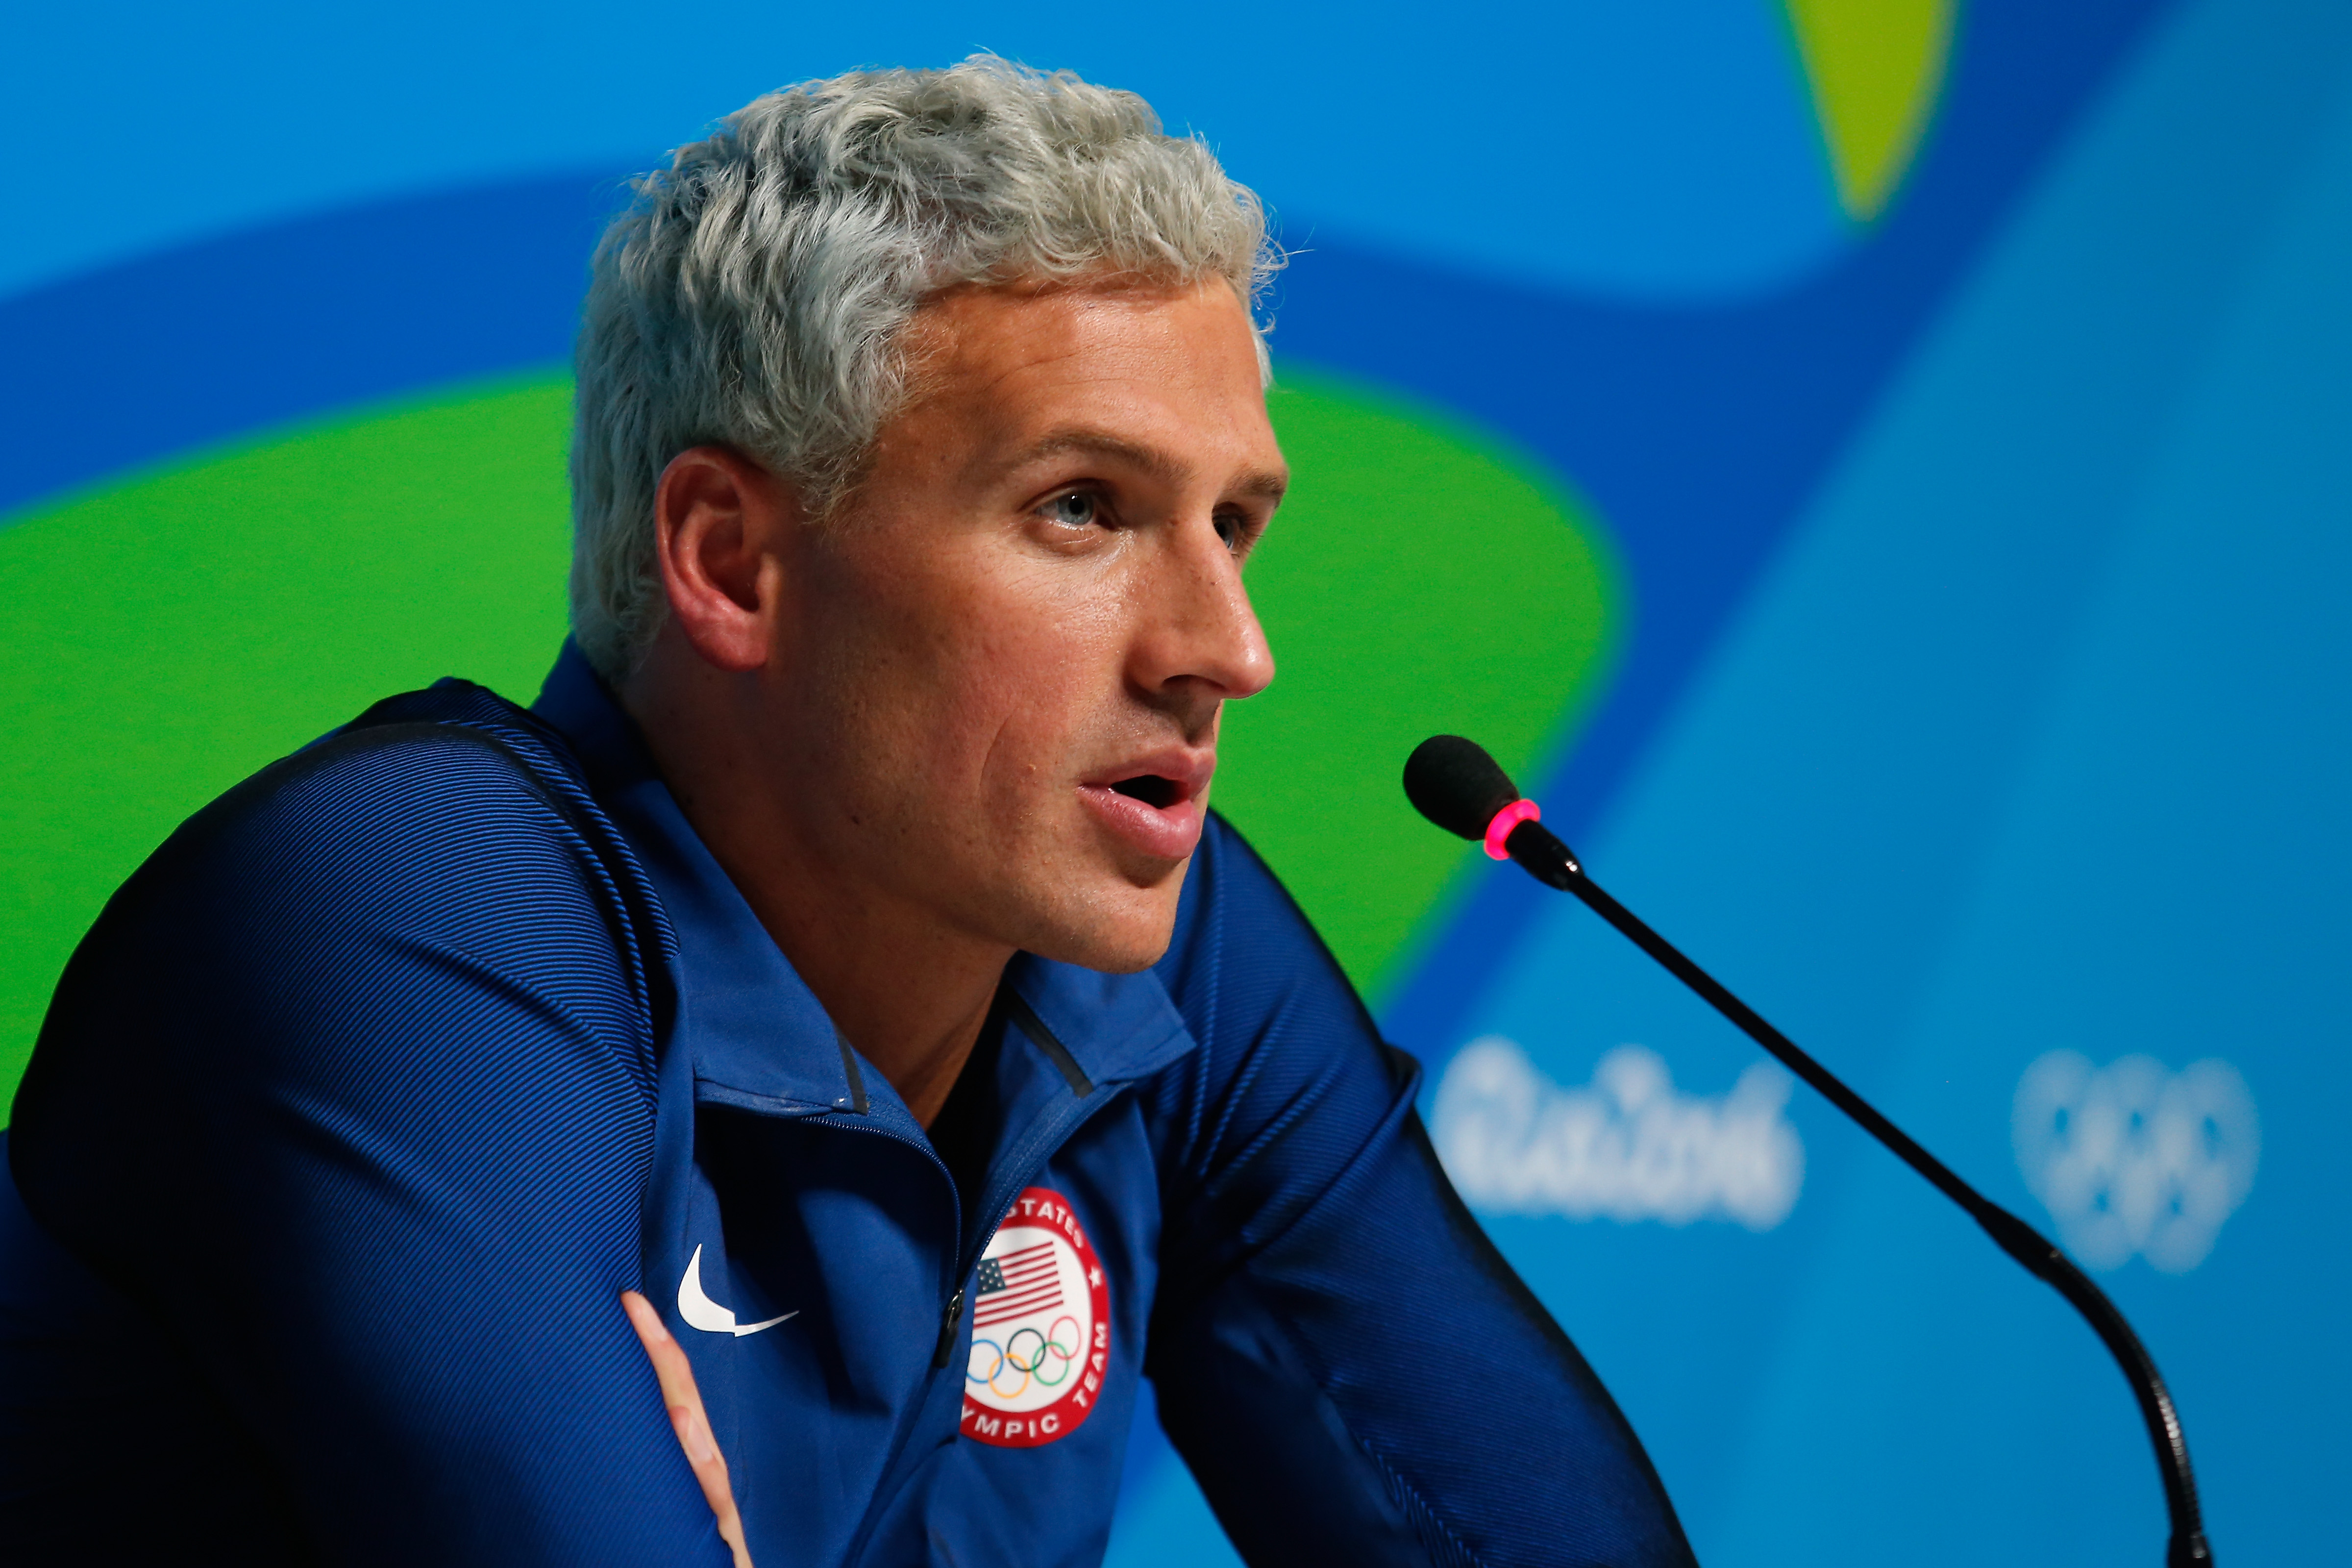 Ryan Lochte of the United States attends a press conference in the Main Press Center on Day 7 of the Rio Olympics on Aug. 12, 2016 in Rio de Janeiro, Brazil.